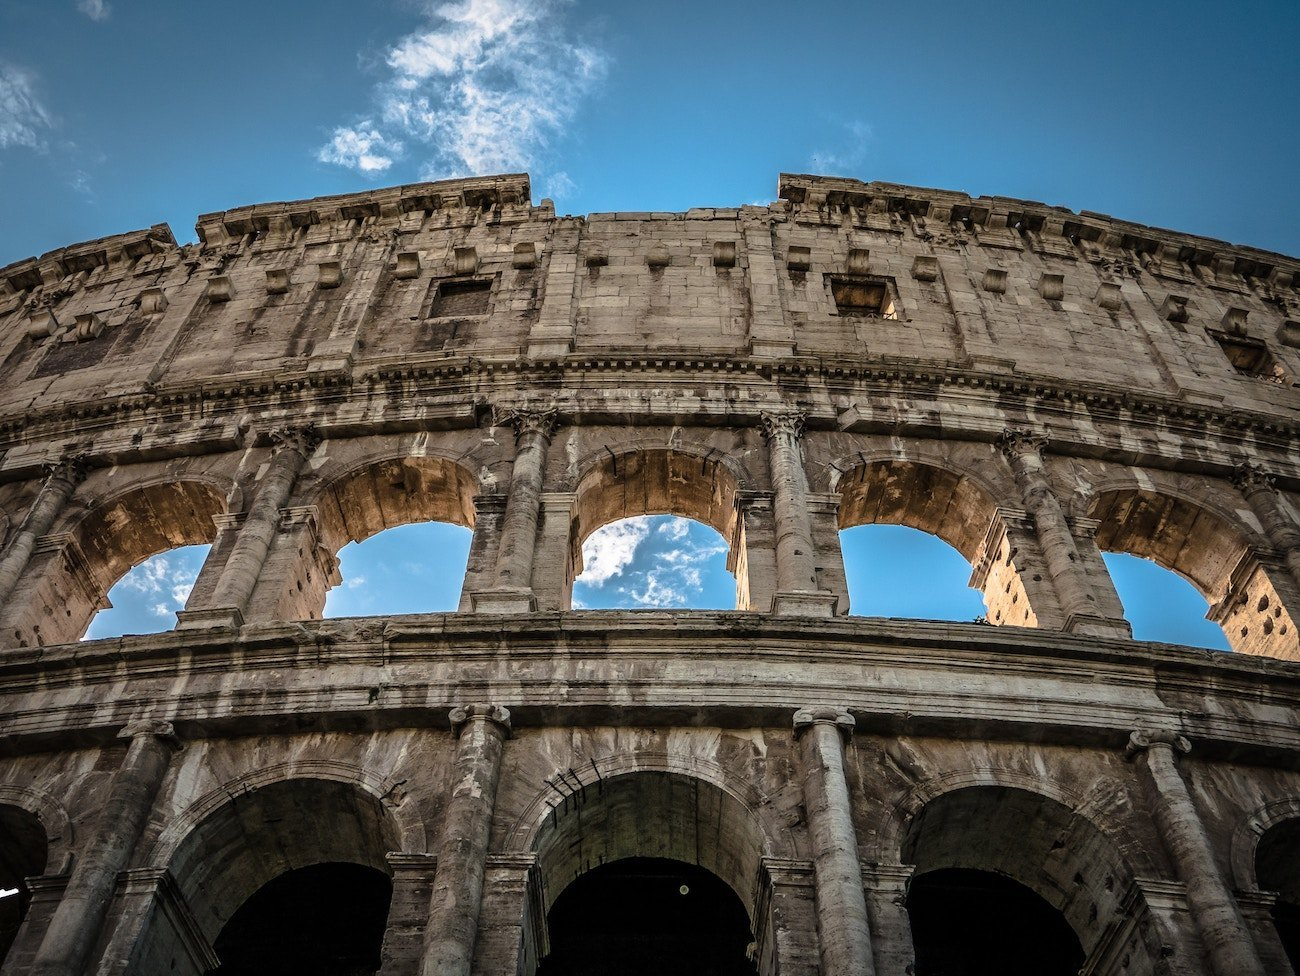 Exploring Rome: Visiting the Colosseum